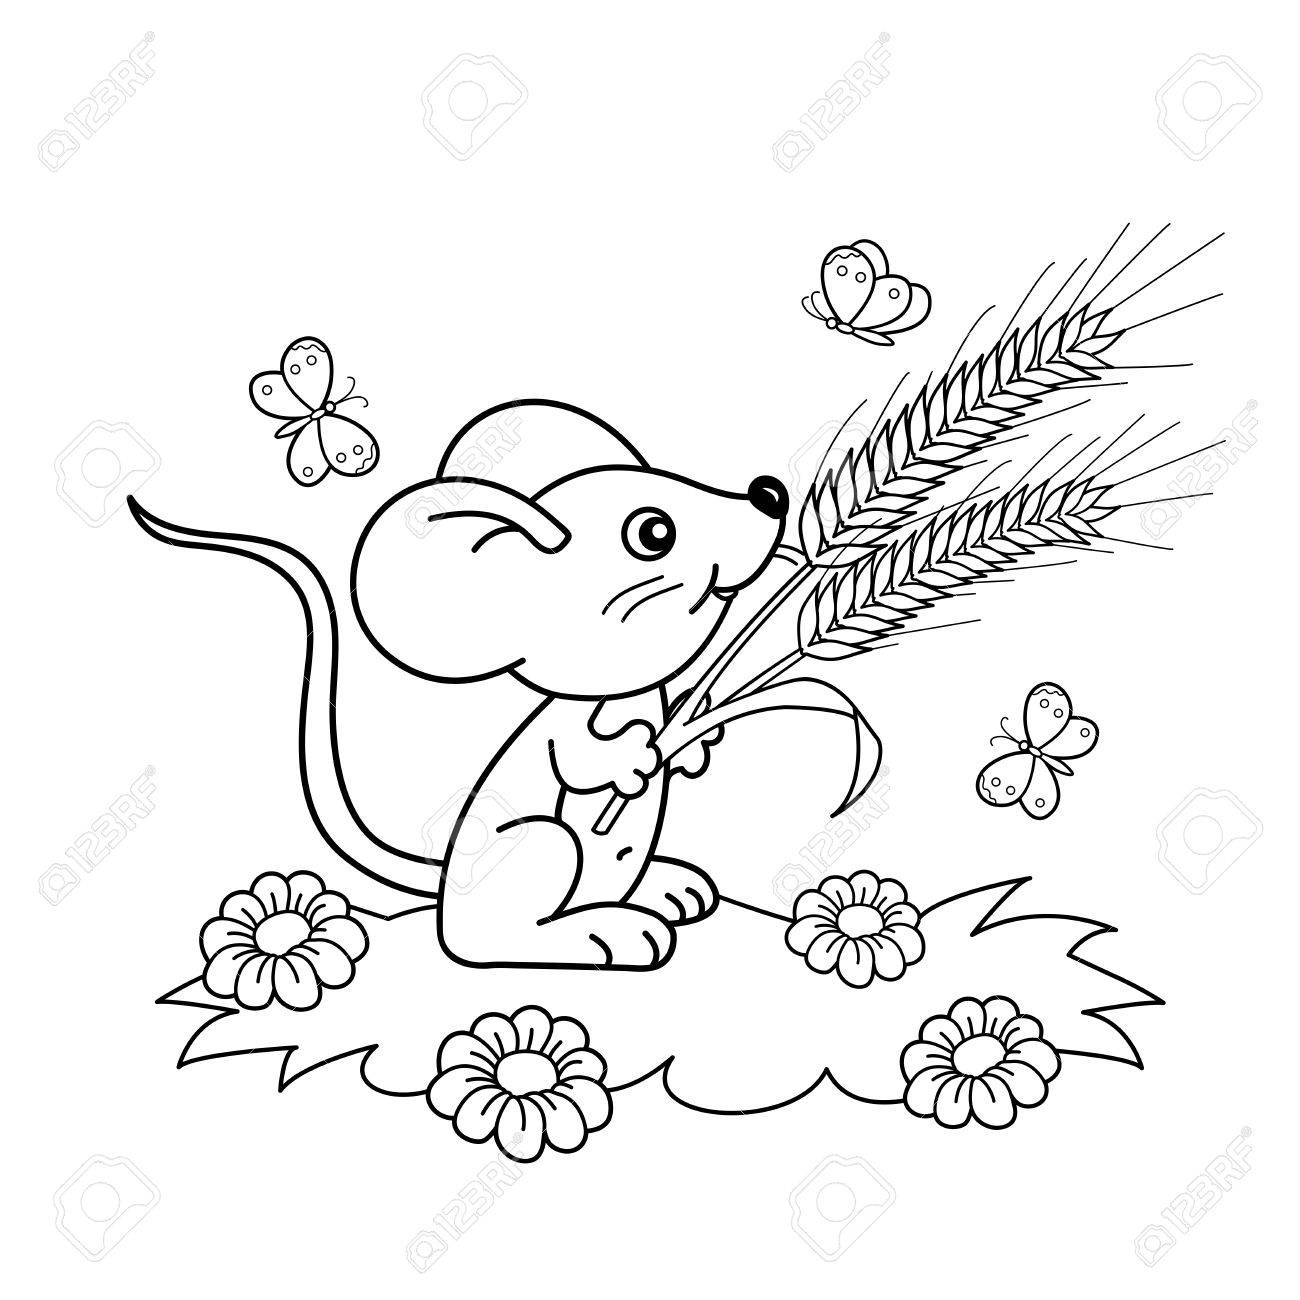 Coloring Page Outline Of Cartoon Little Mouse With Spikelets